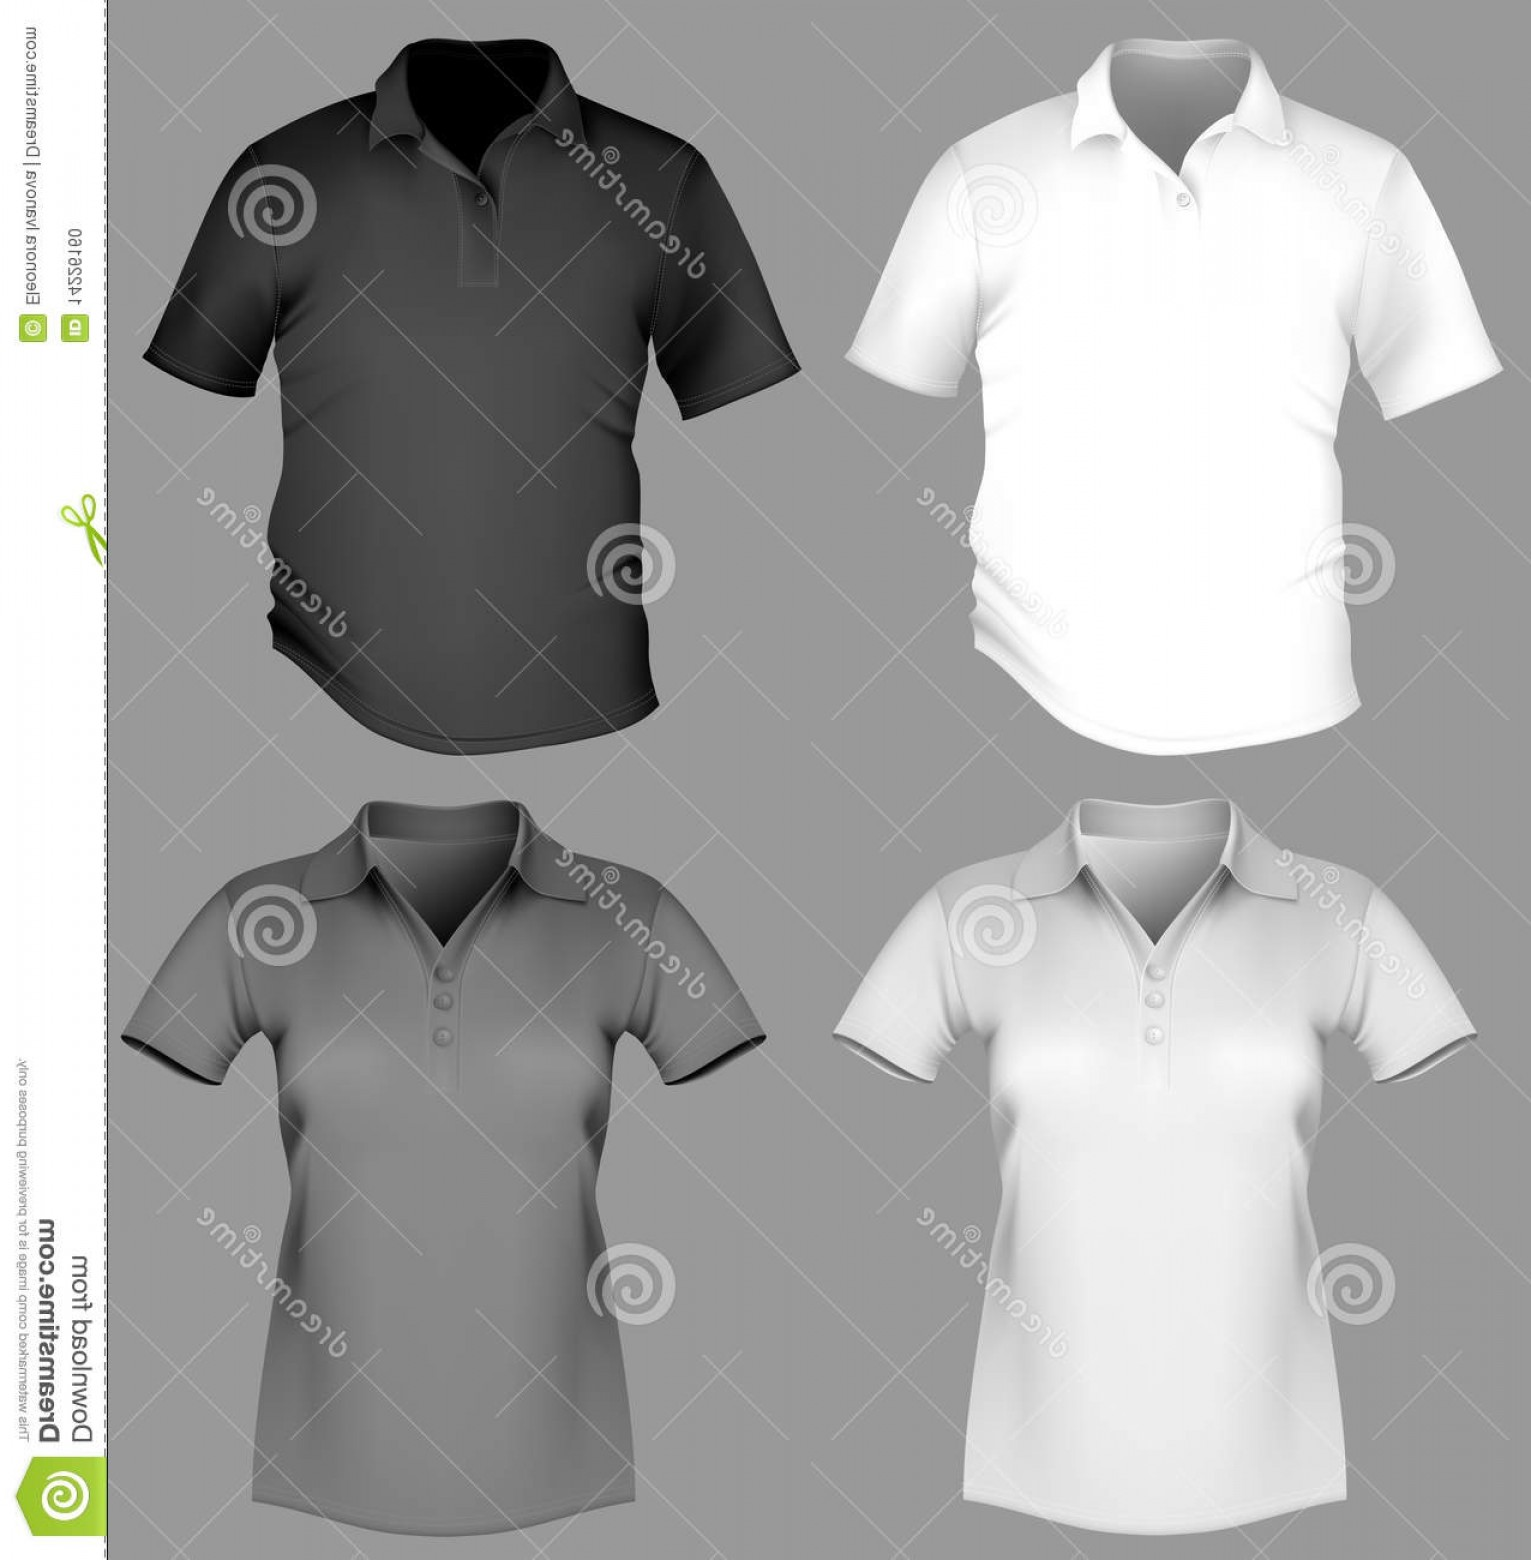 Female Polo Shirt Vector Template: Stock Photo Polo Shirt Design Template Men Women Image